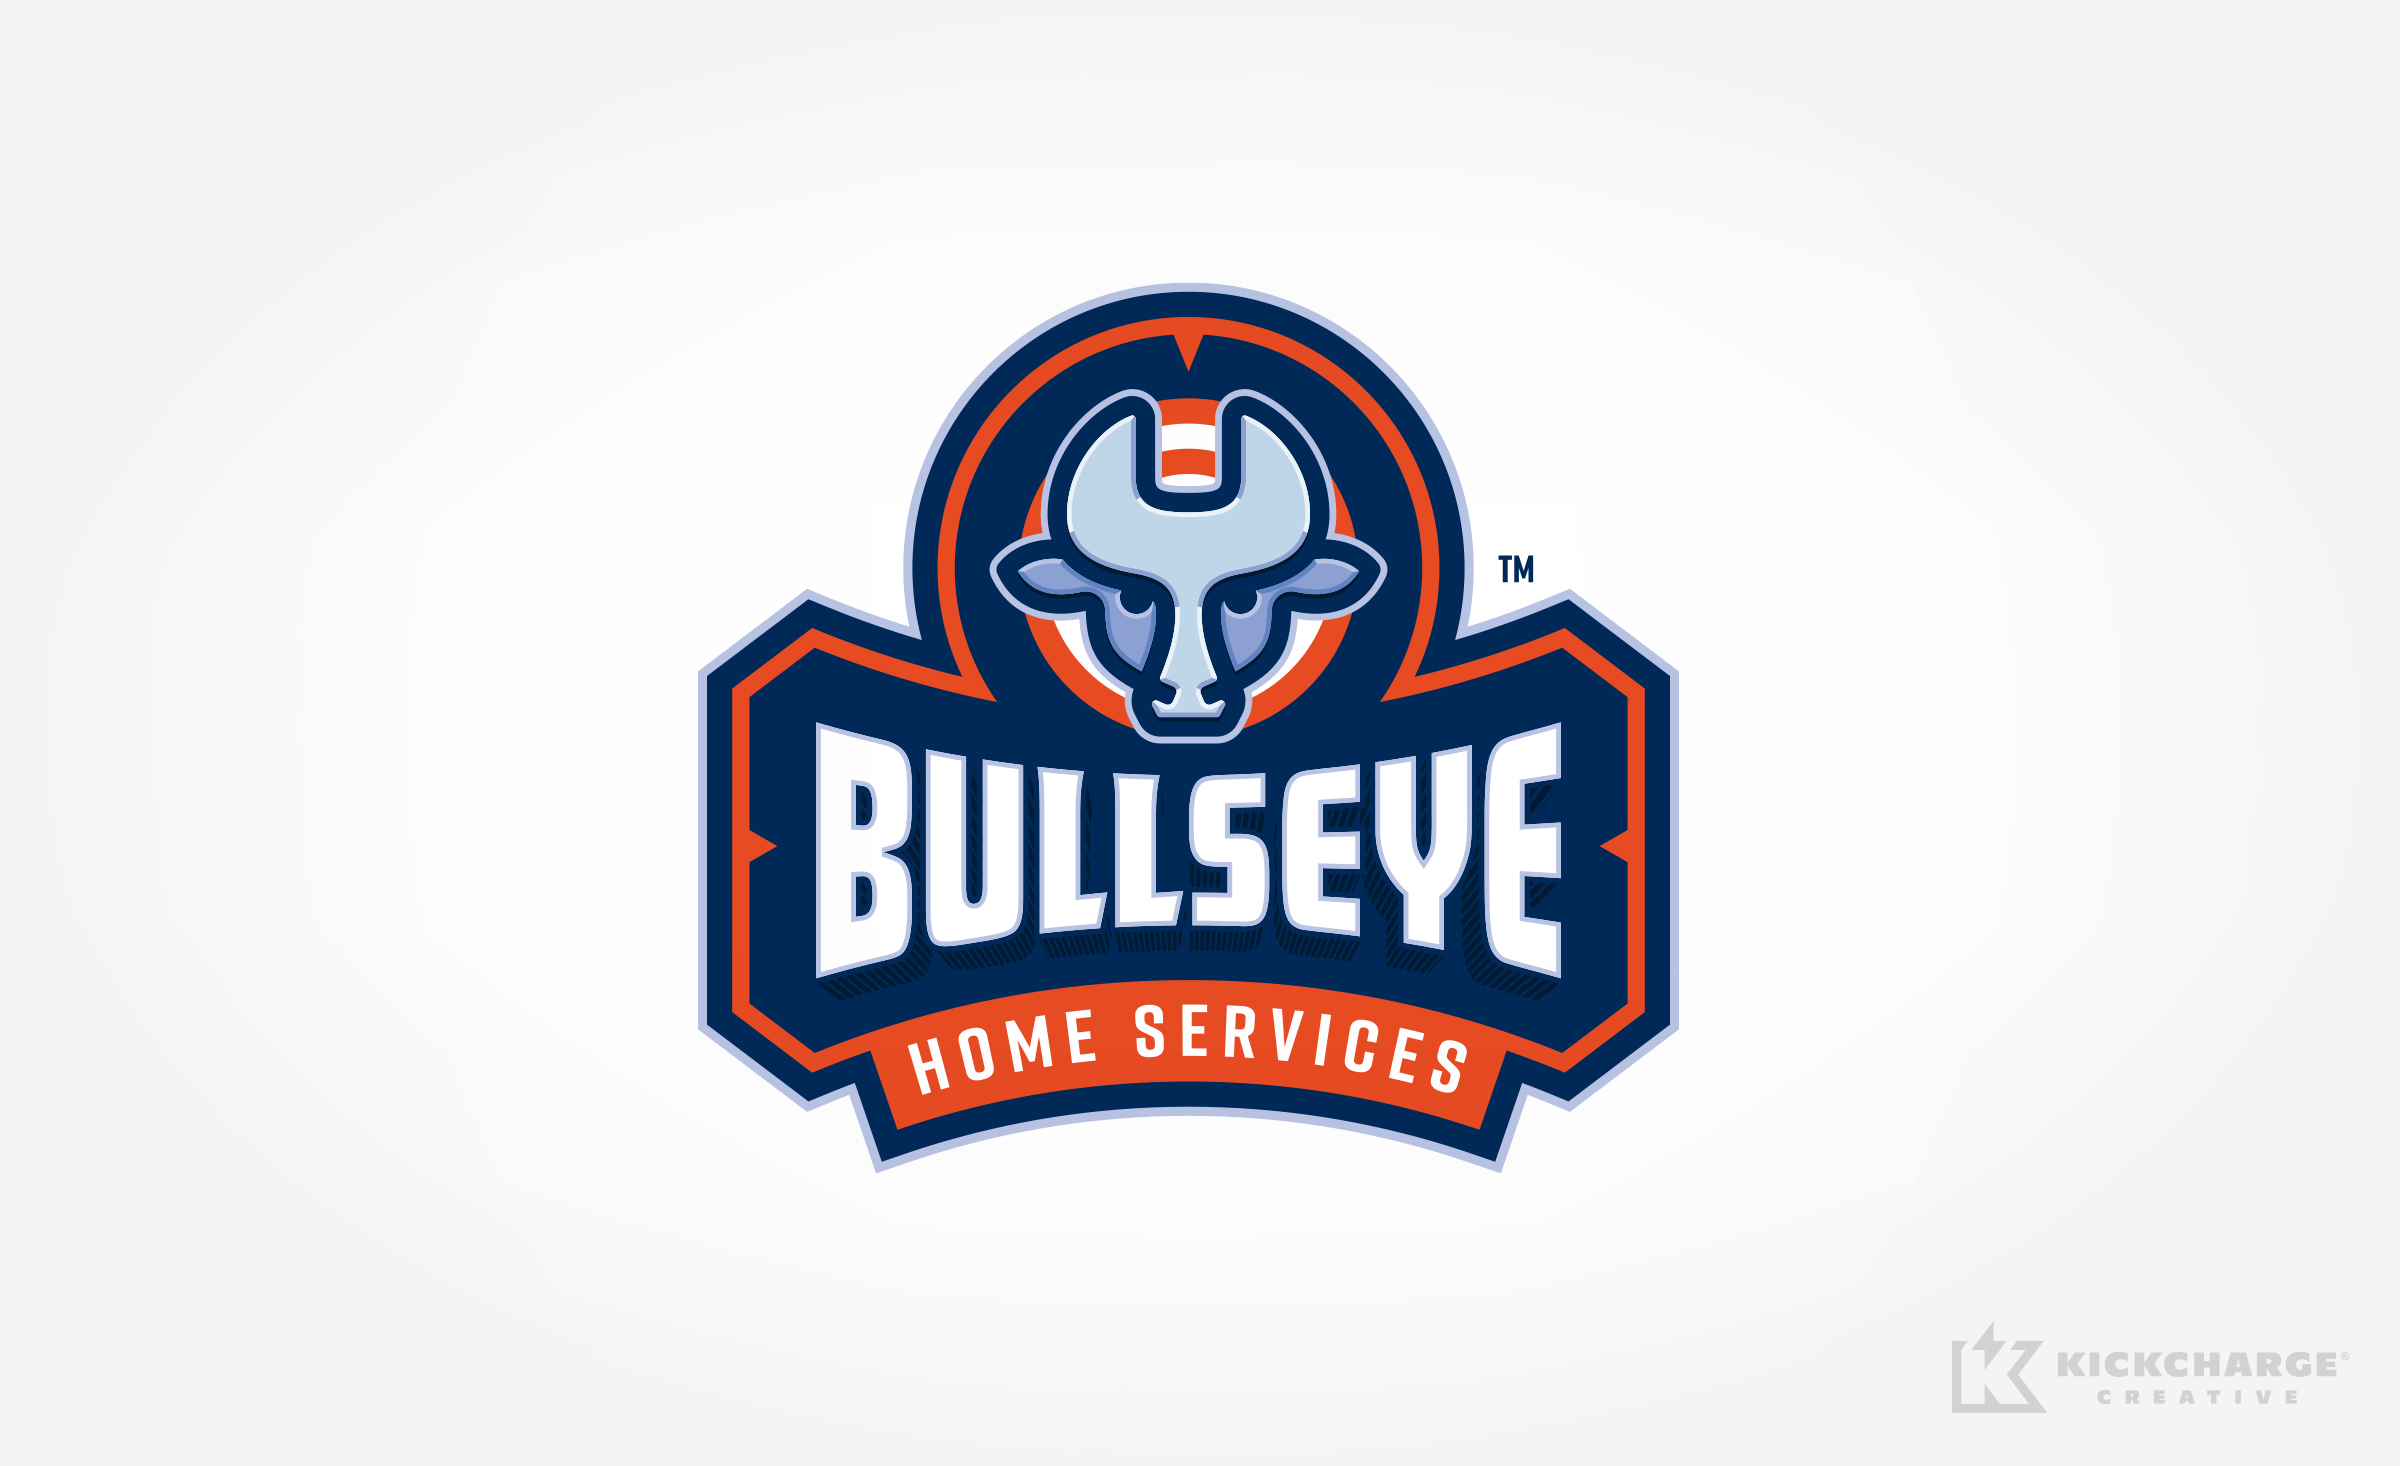 hvac logo for Bullseye Home Services